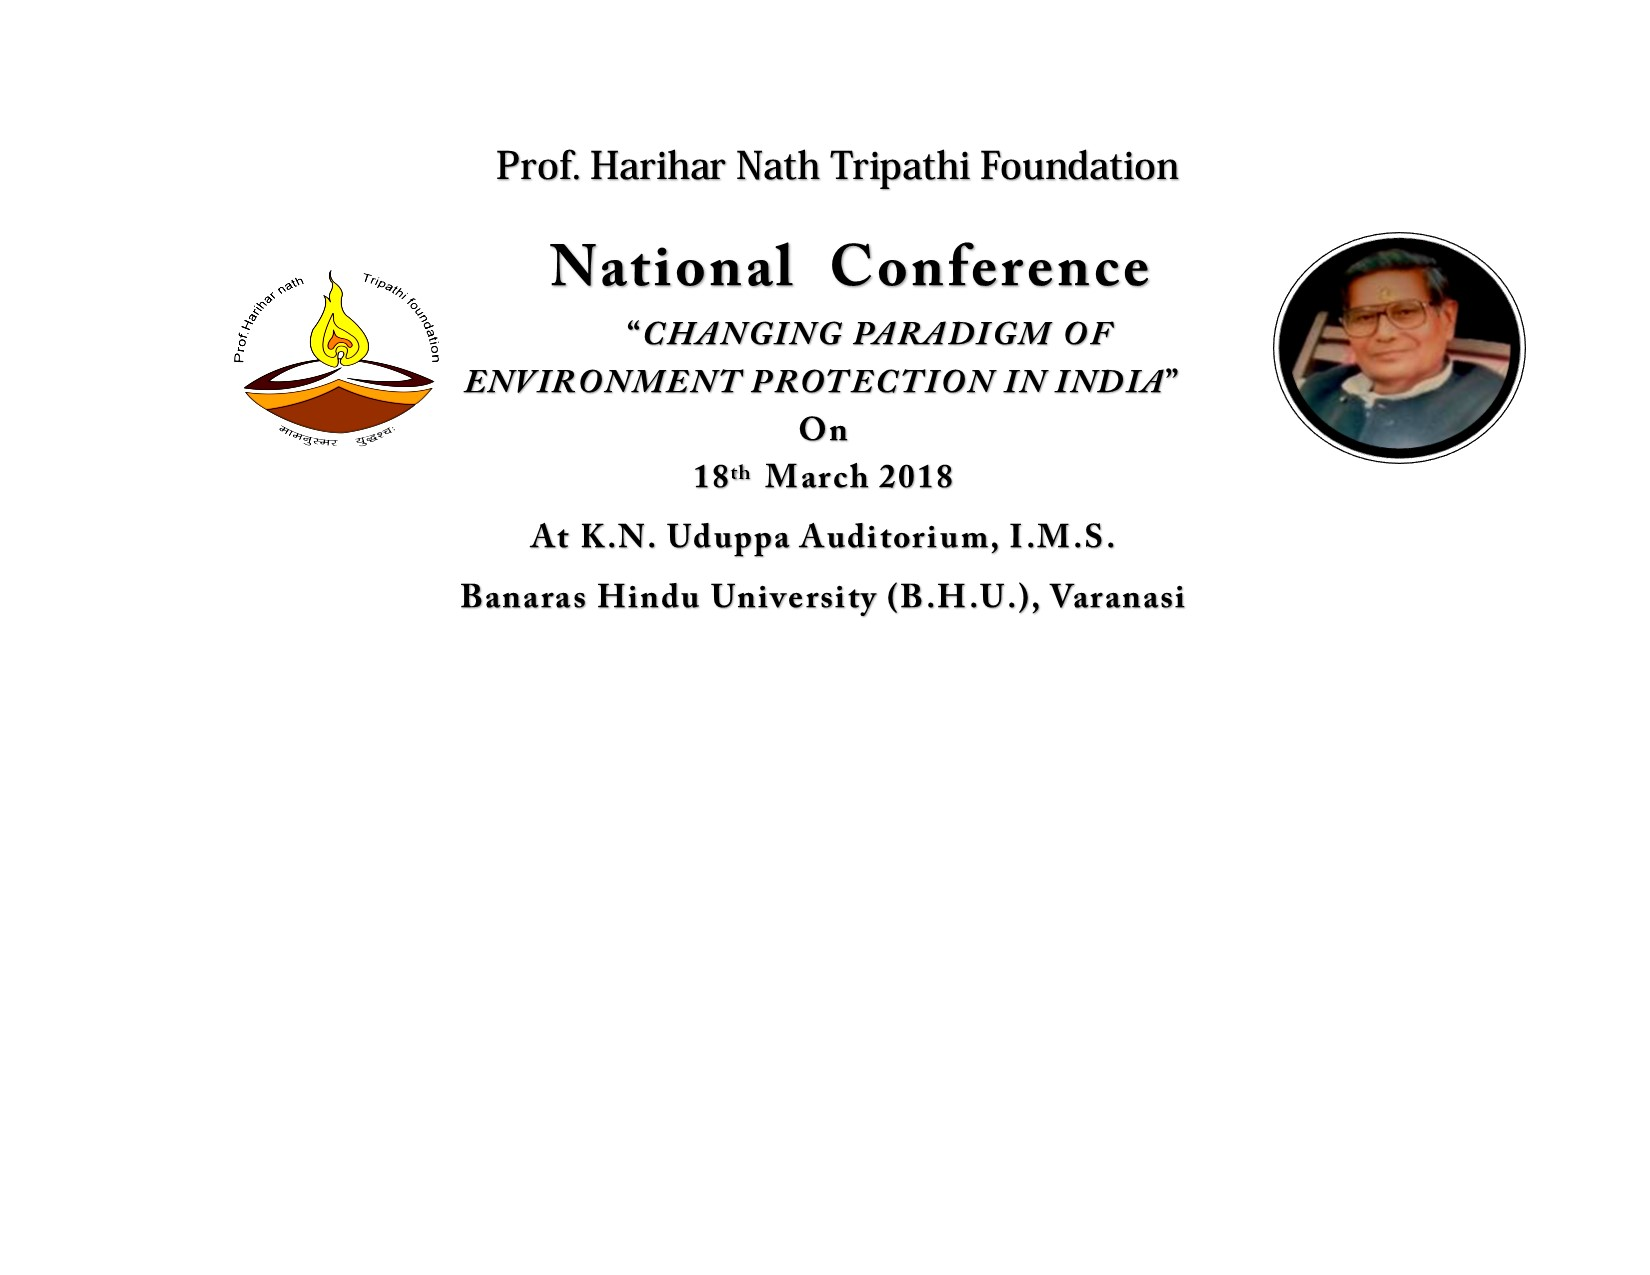 BHU Varanasi Environment protection conference